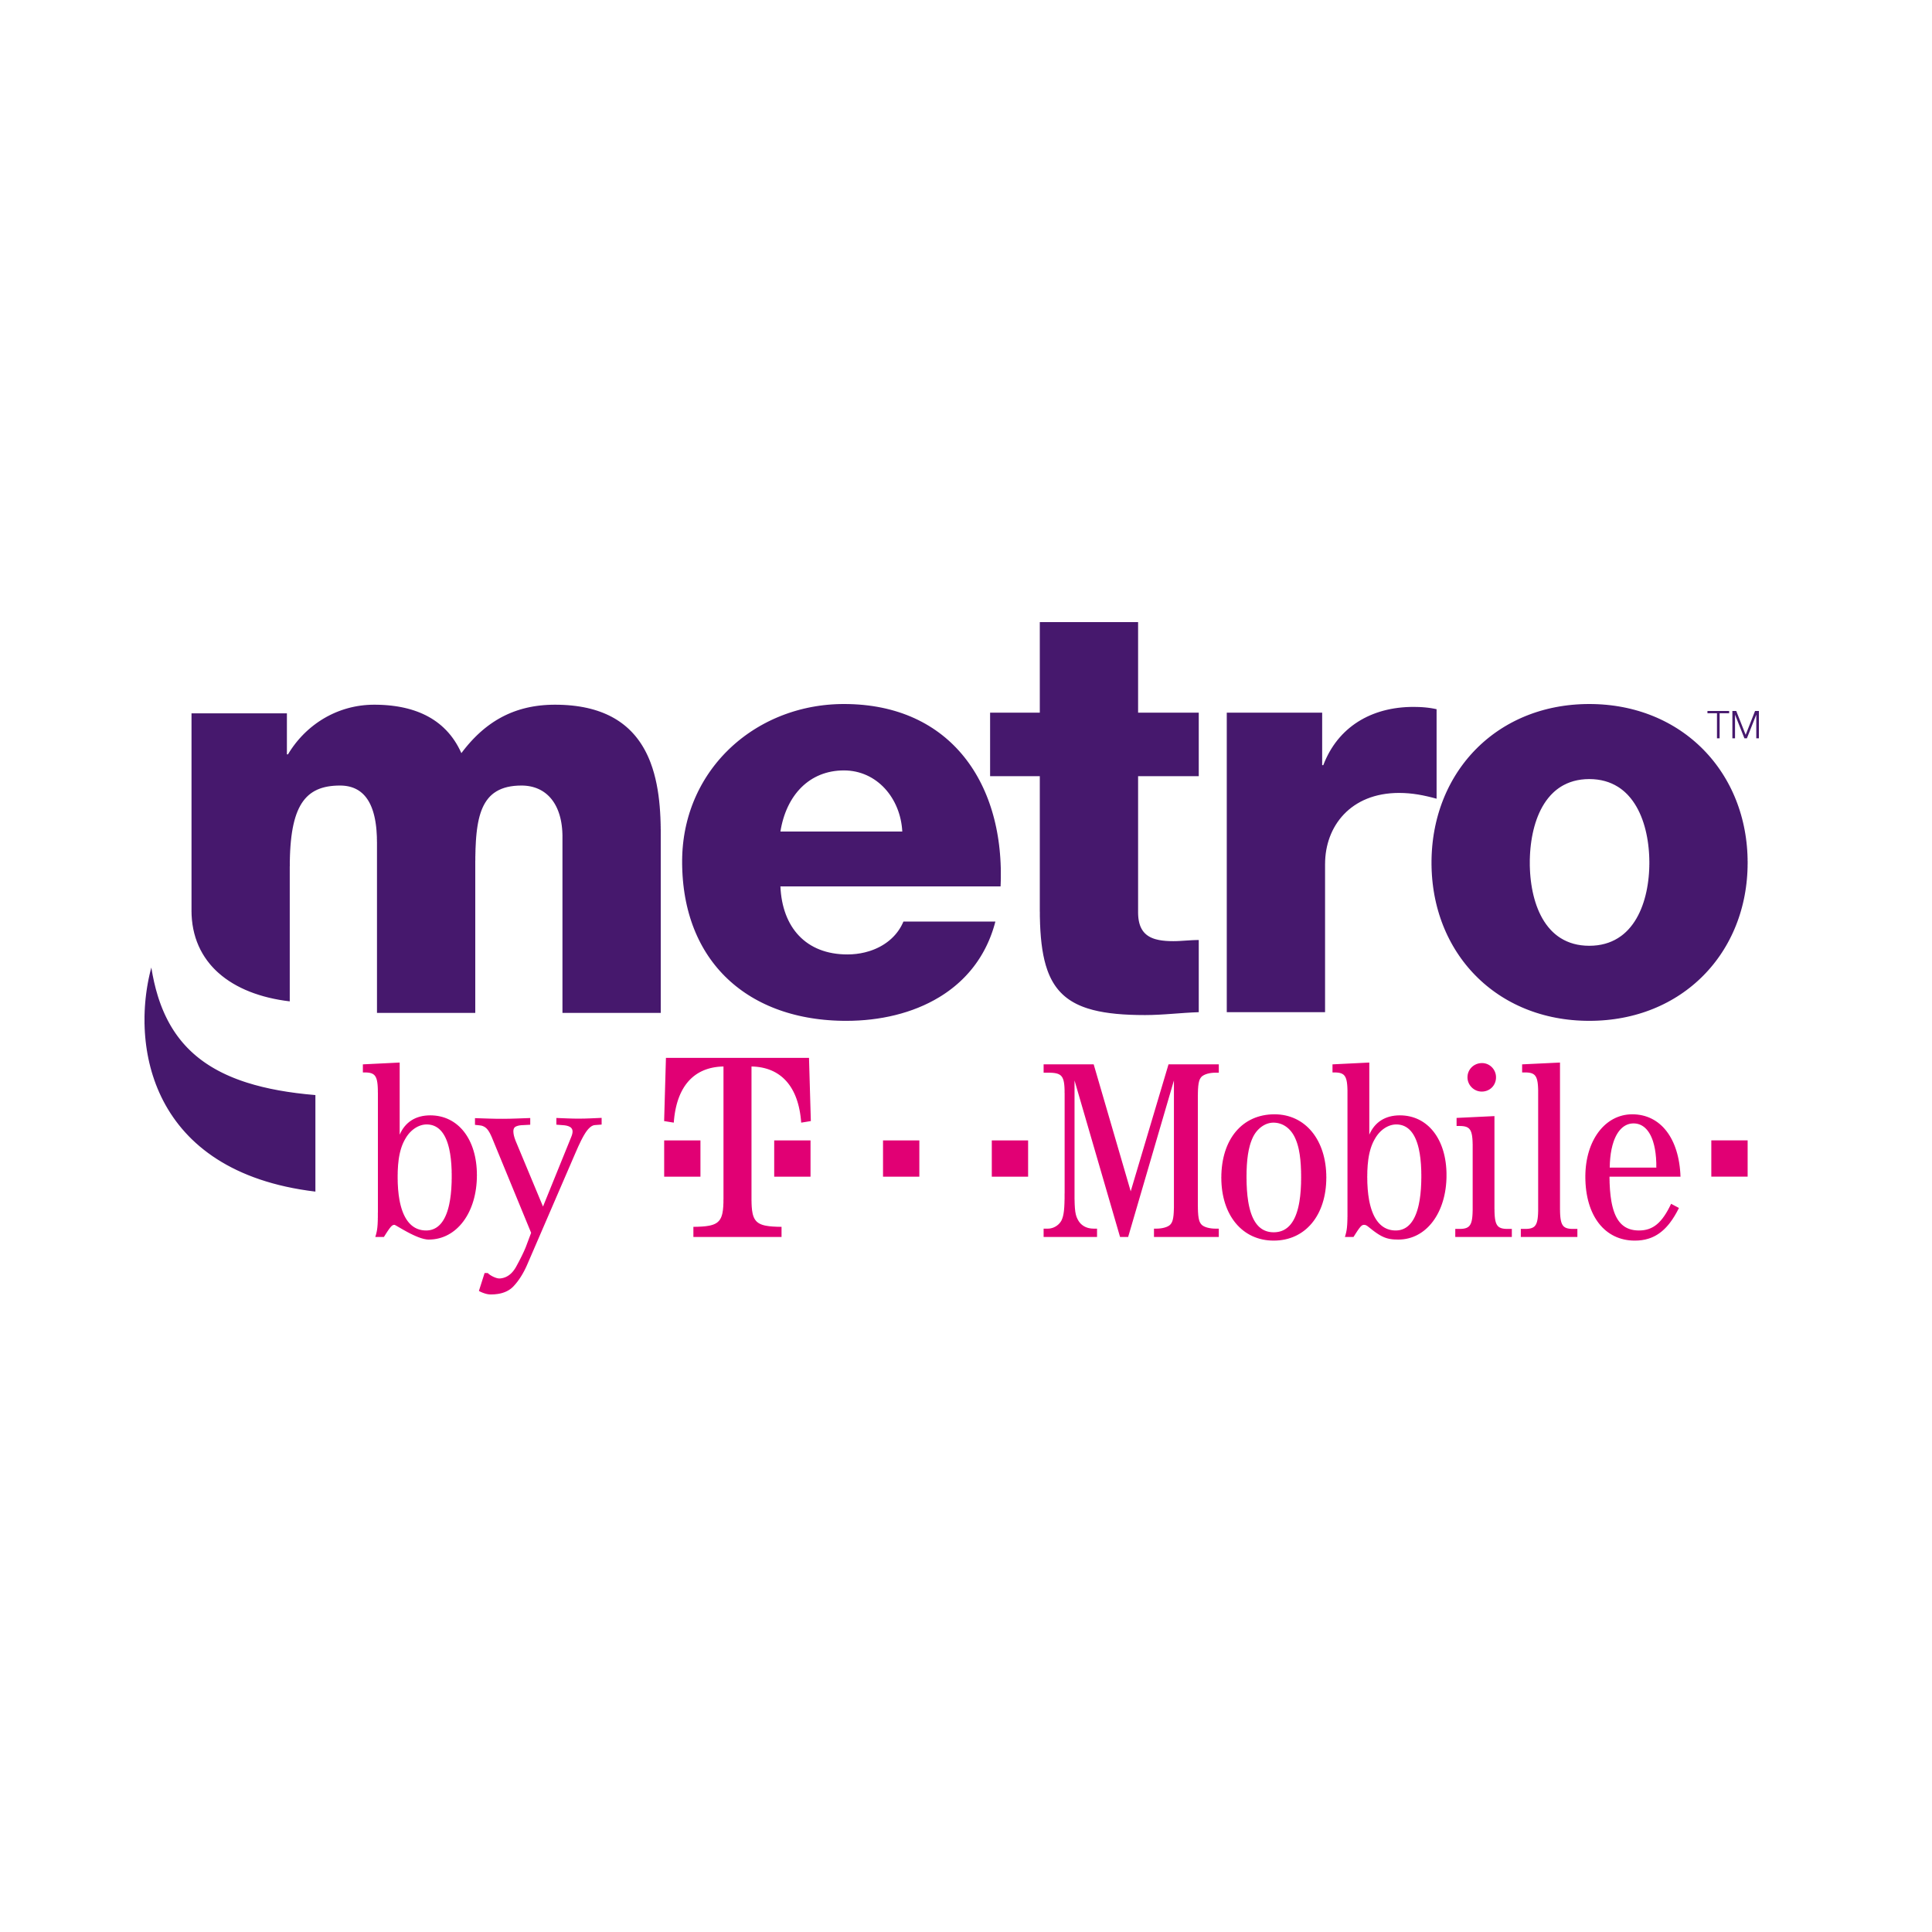 image of Metro by T-Mobile